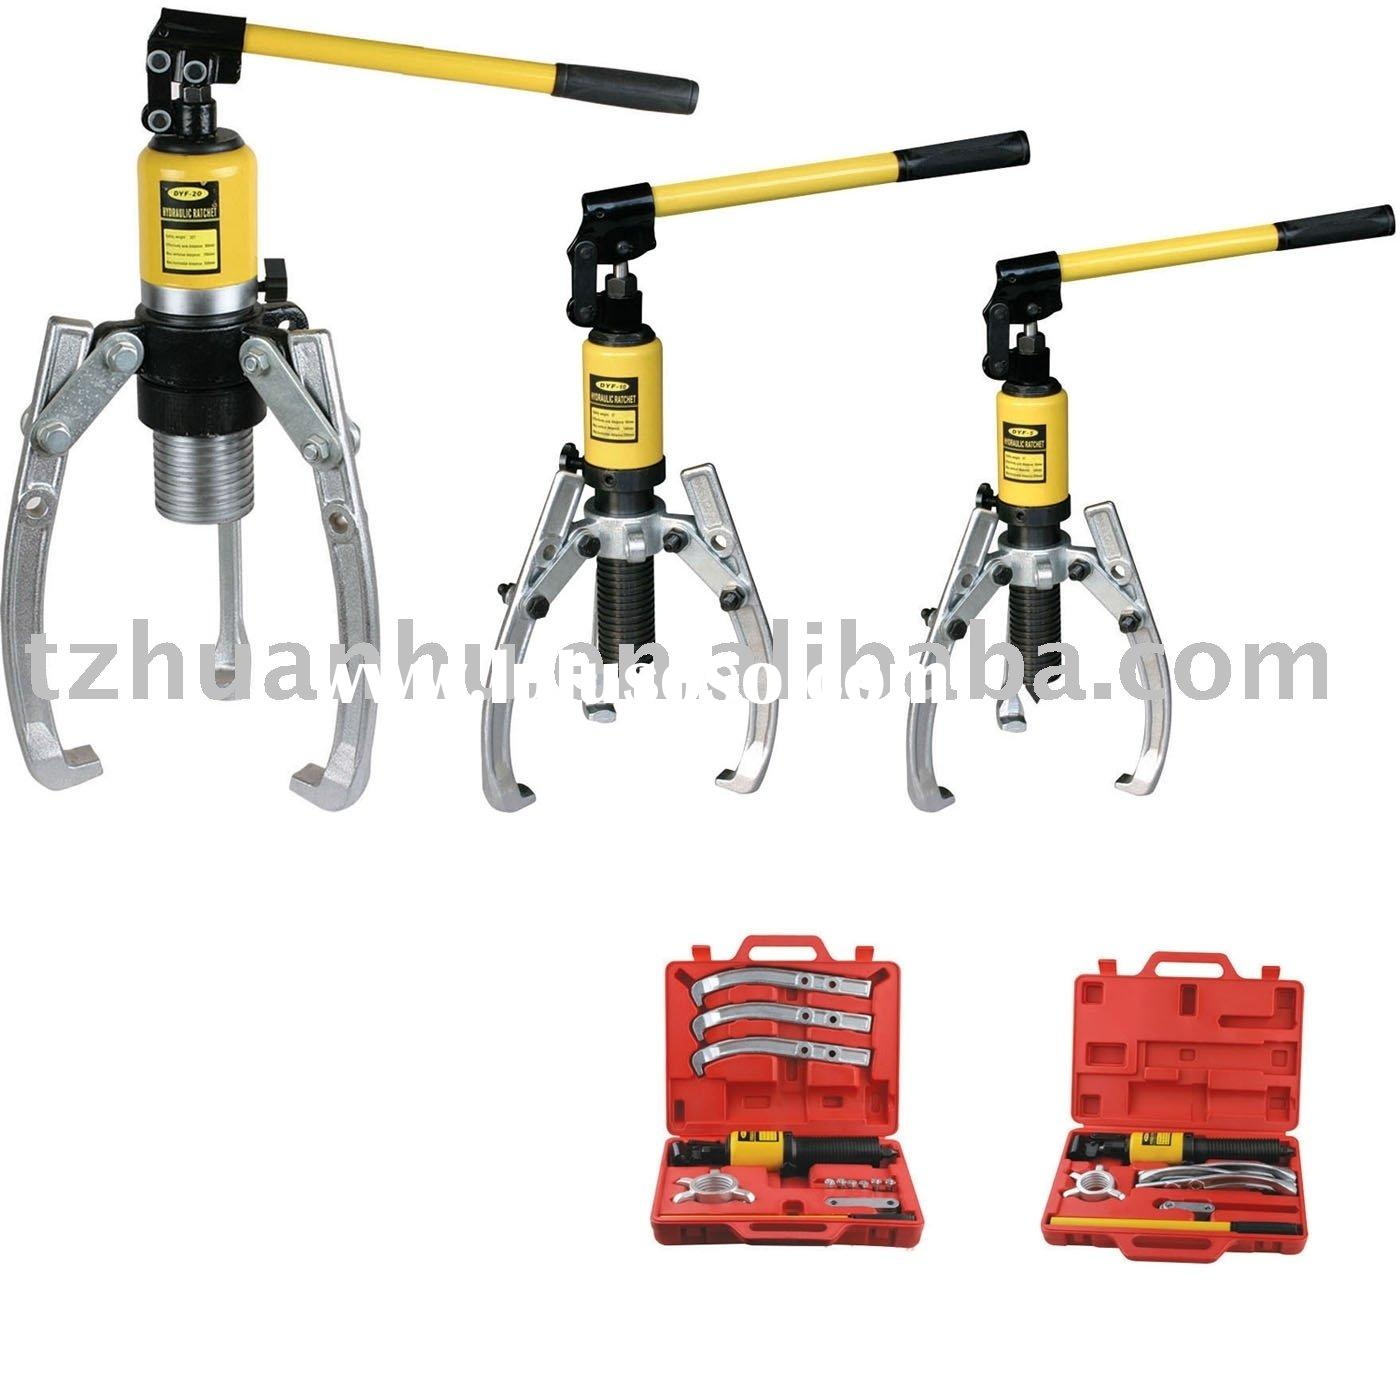 Hydraulic Bearing Puller For Sale : Hydraulic bearing pullers for sale price china